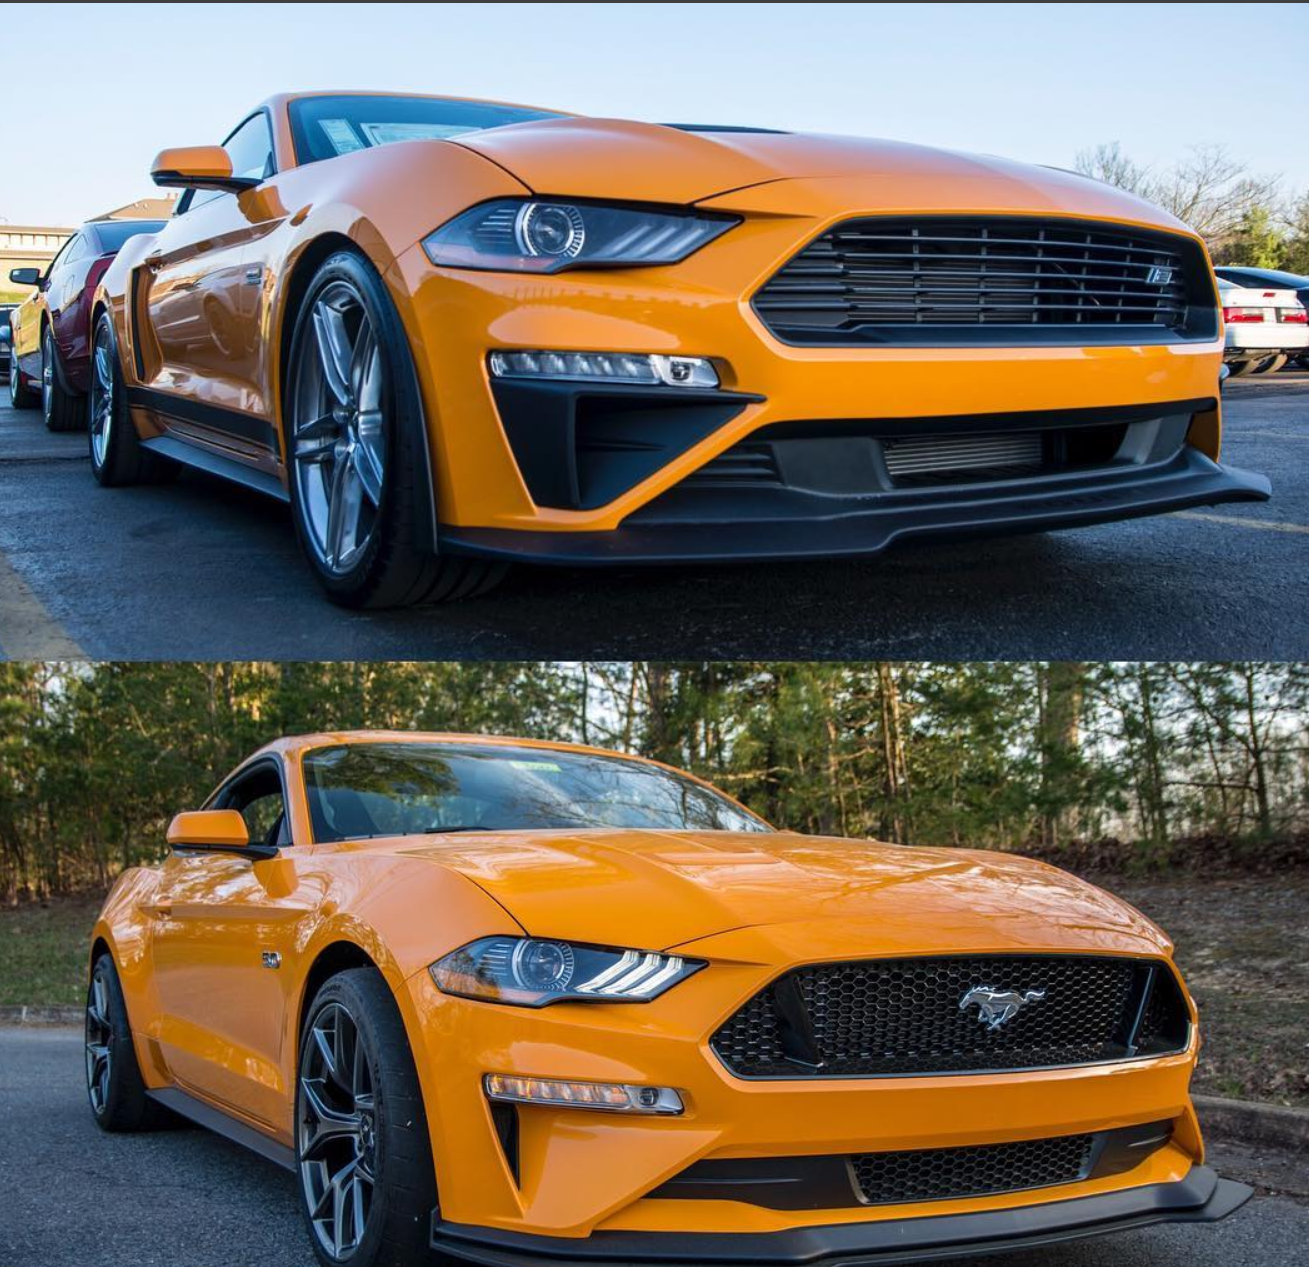 2018 ford mustang ecoboost features an orange fury metallic tri coat exterior with an ebony interior call hacienda ford today at 956 219 2260 to schedule